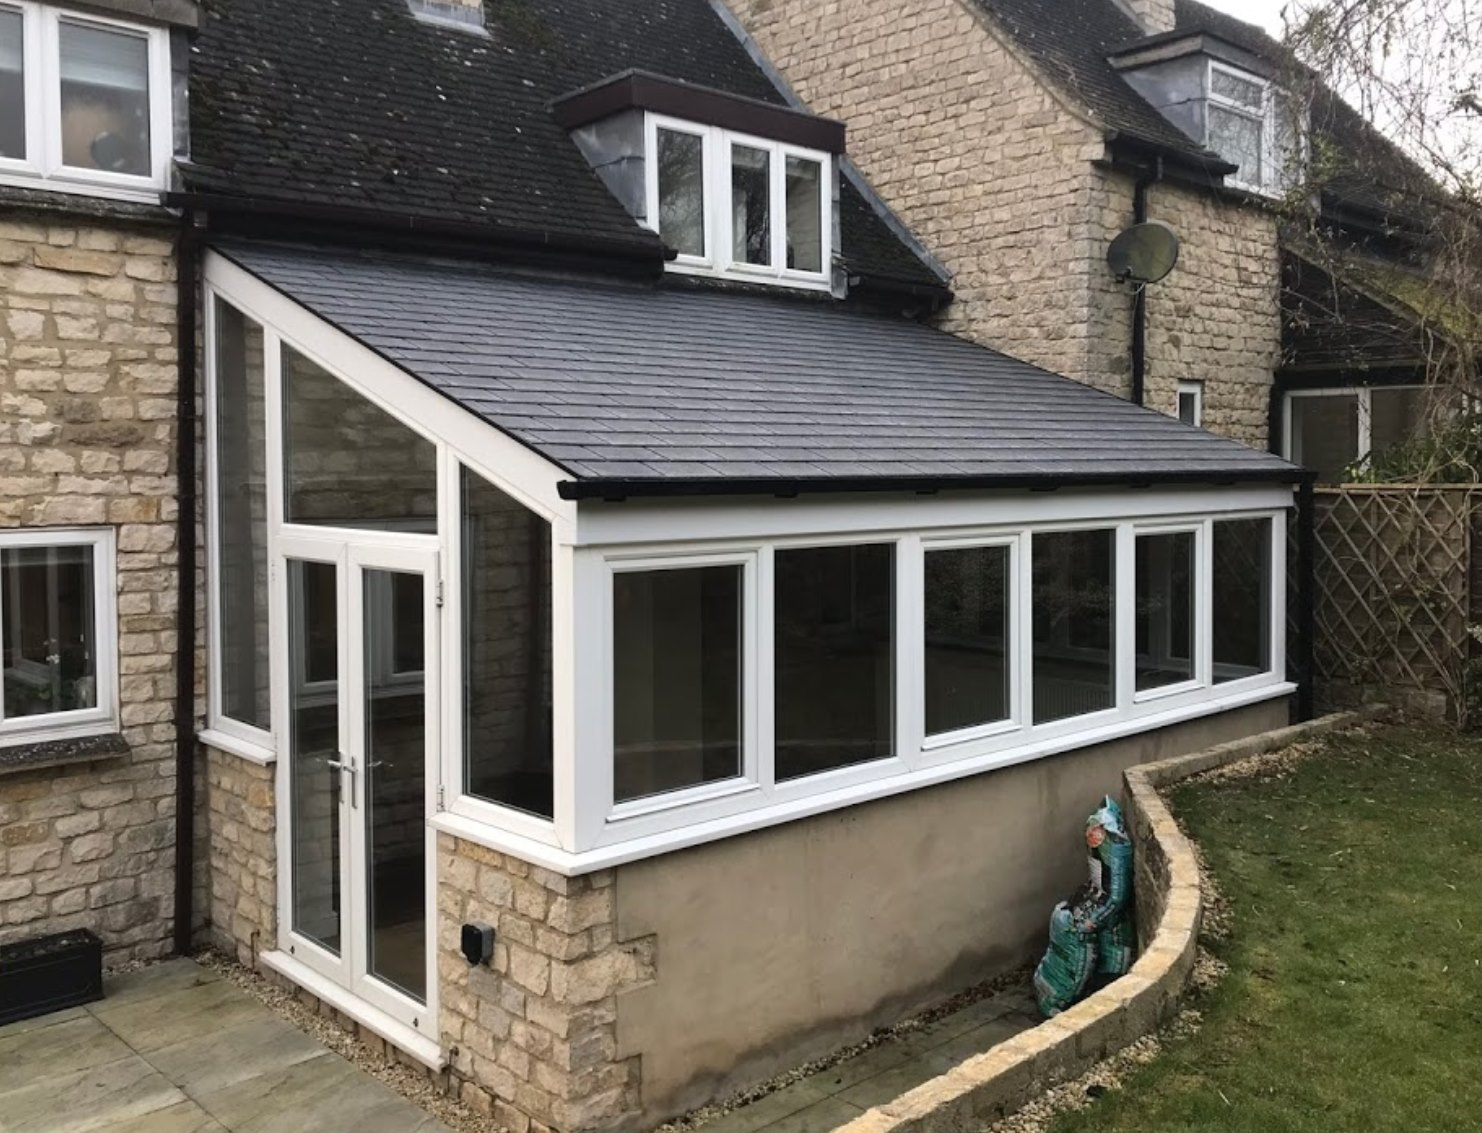 How Can You Improve Your Existing Conservatory Set-Up?